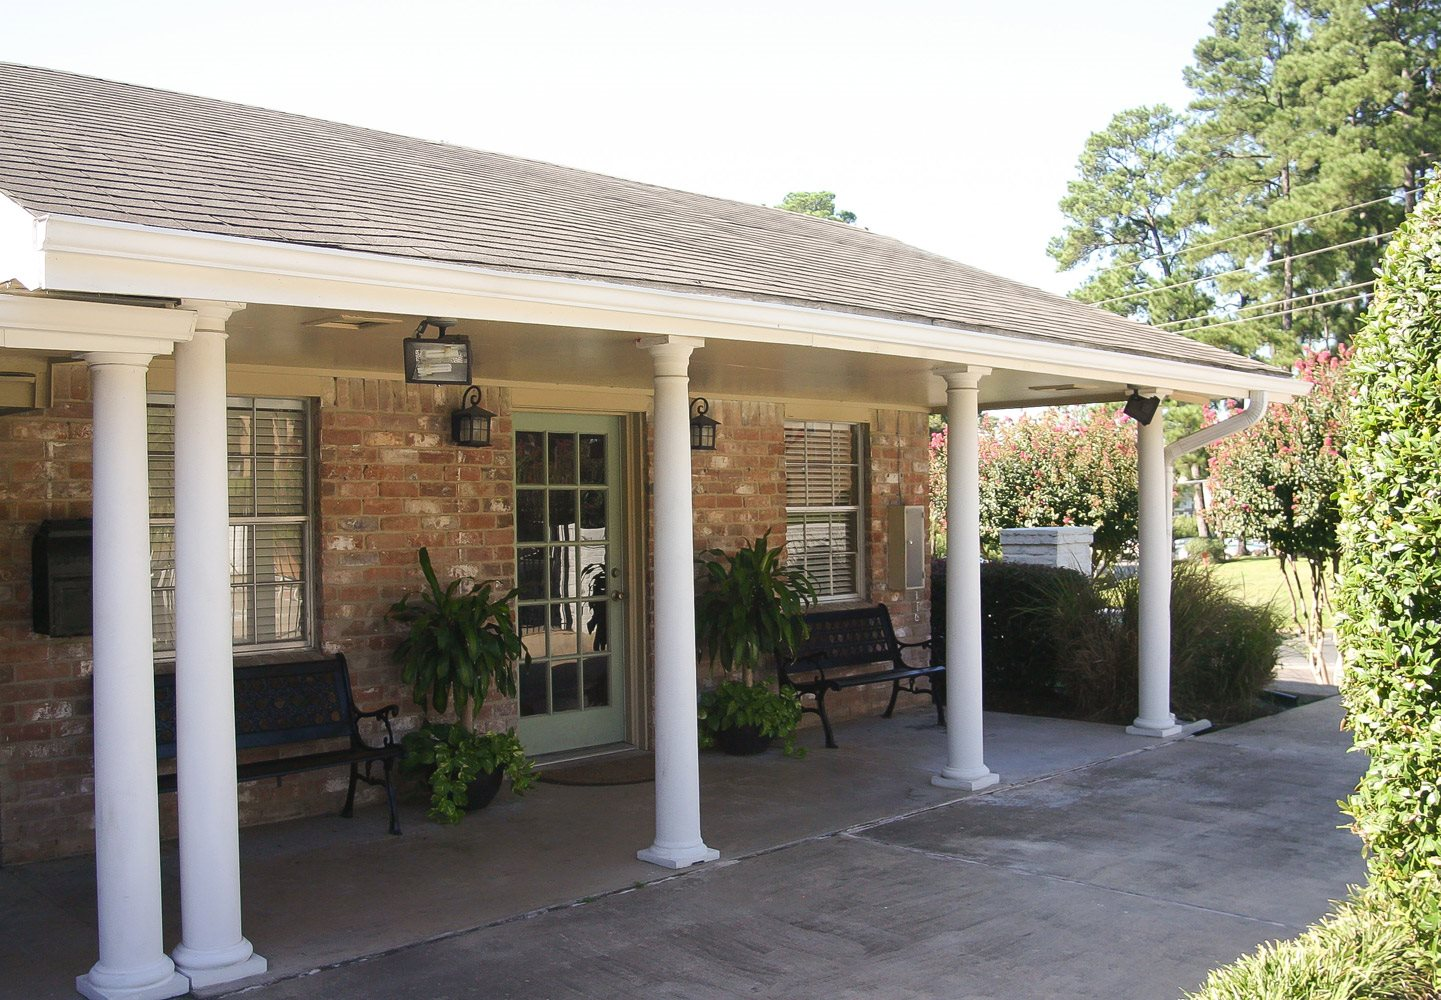 Exterior Property Photo at Woodhollow Apartments in Huntsville , TX 77340